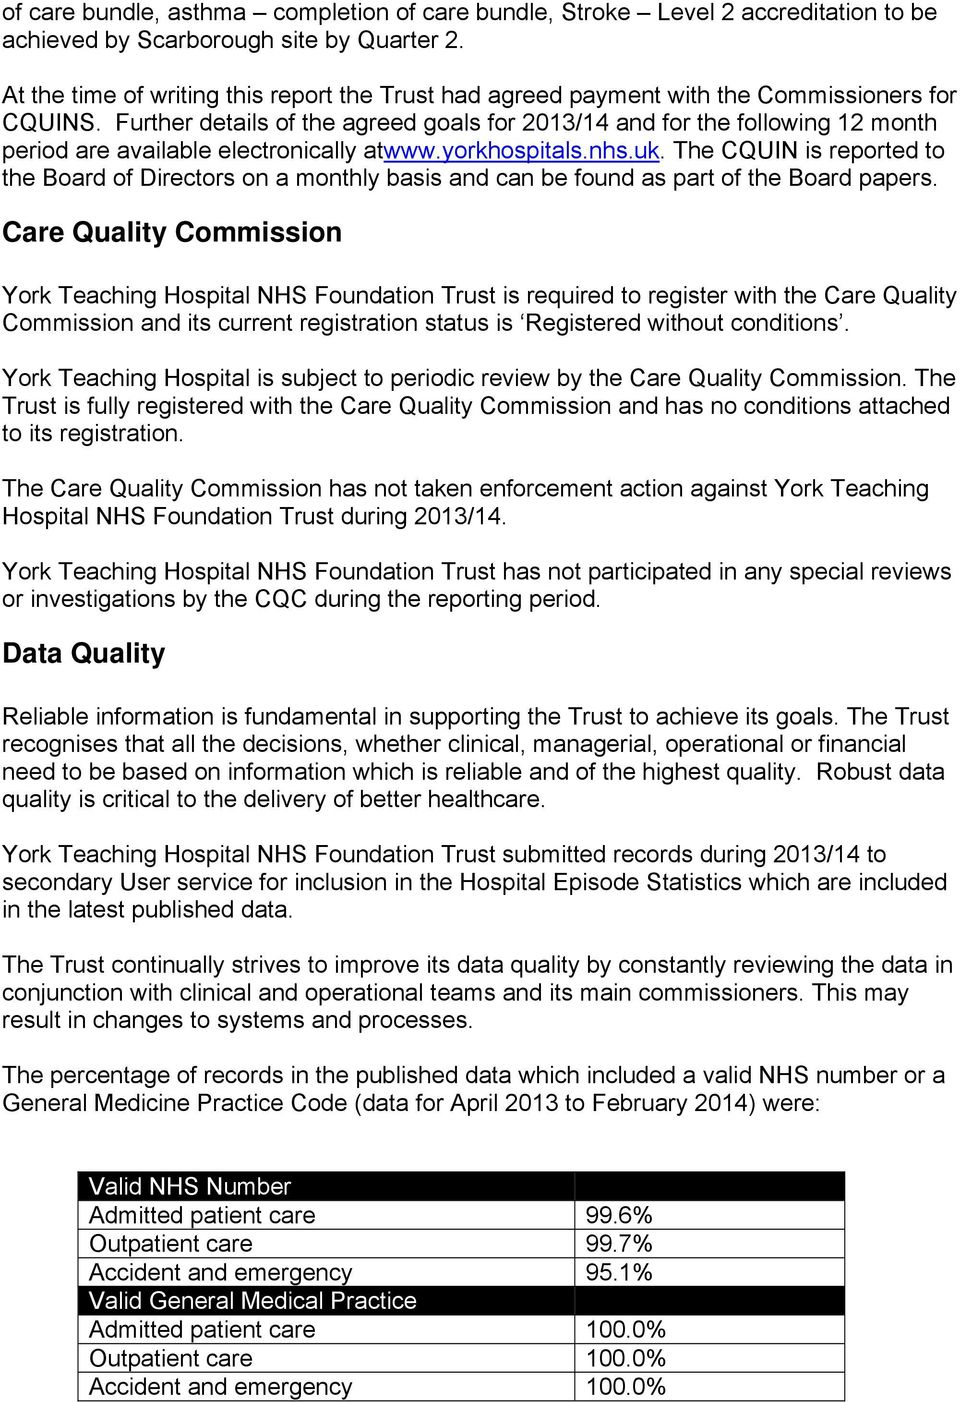 Further details of the agreed goals for 2013/14 and for the following 12 month period are available electronically atwww.yorkhospitals.nhs.uk.